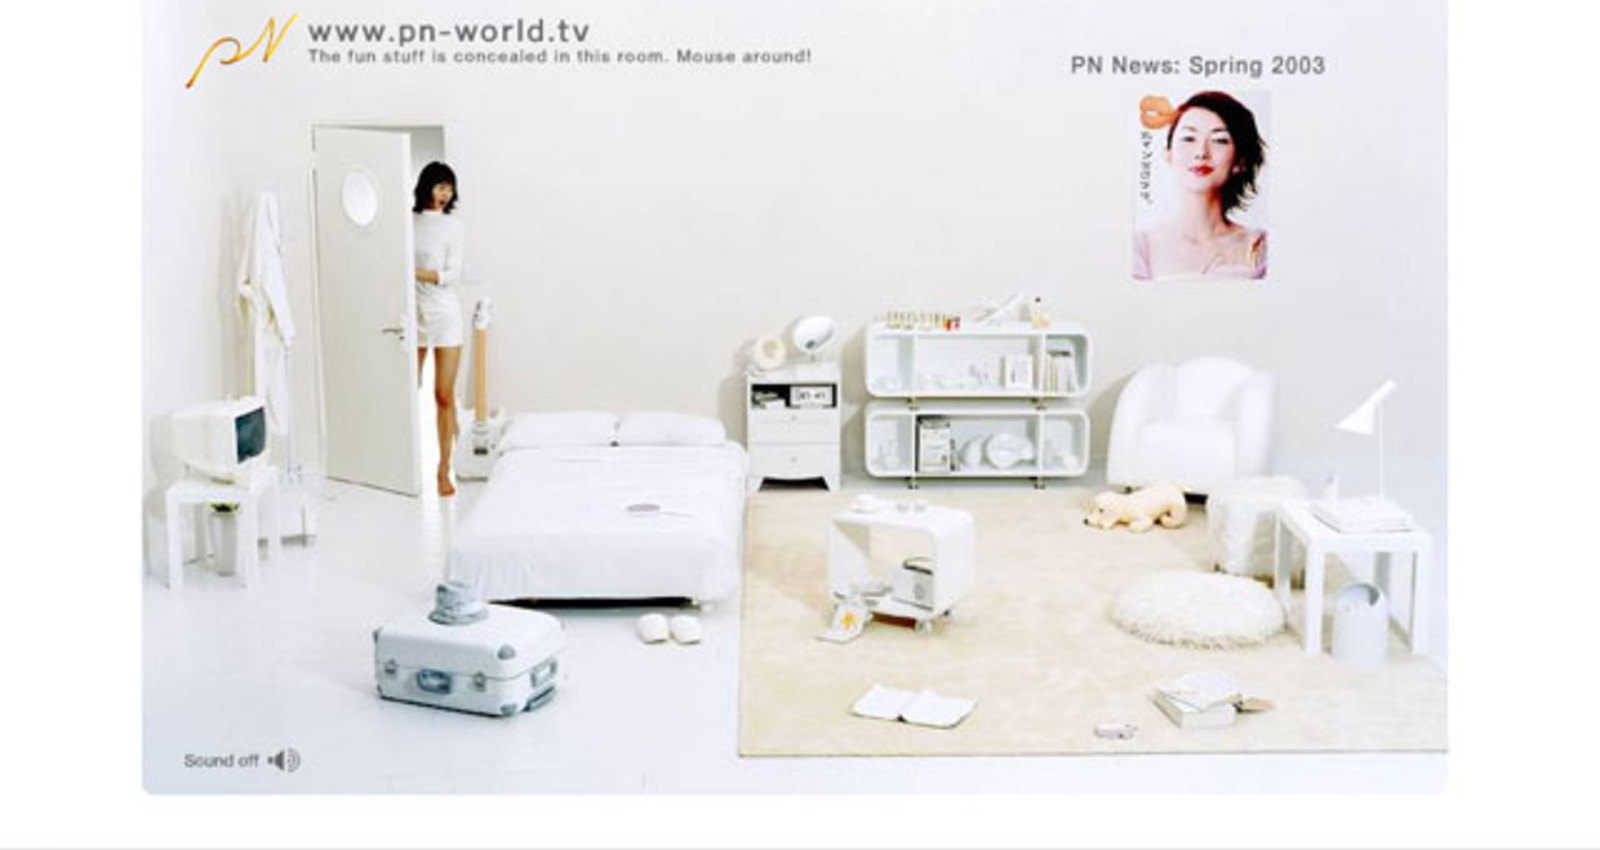 pn-world.tv